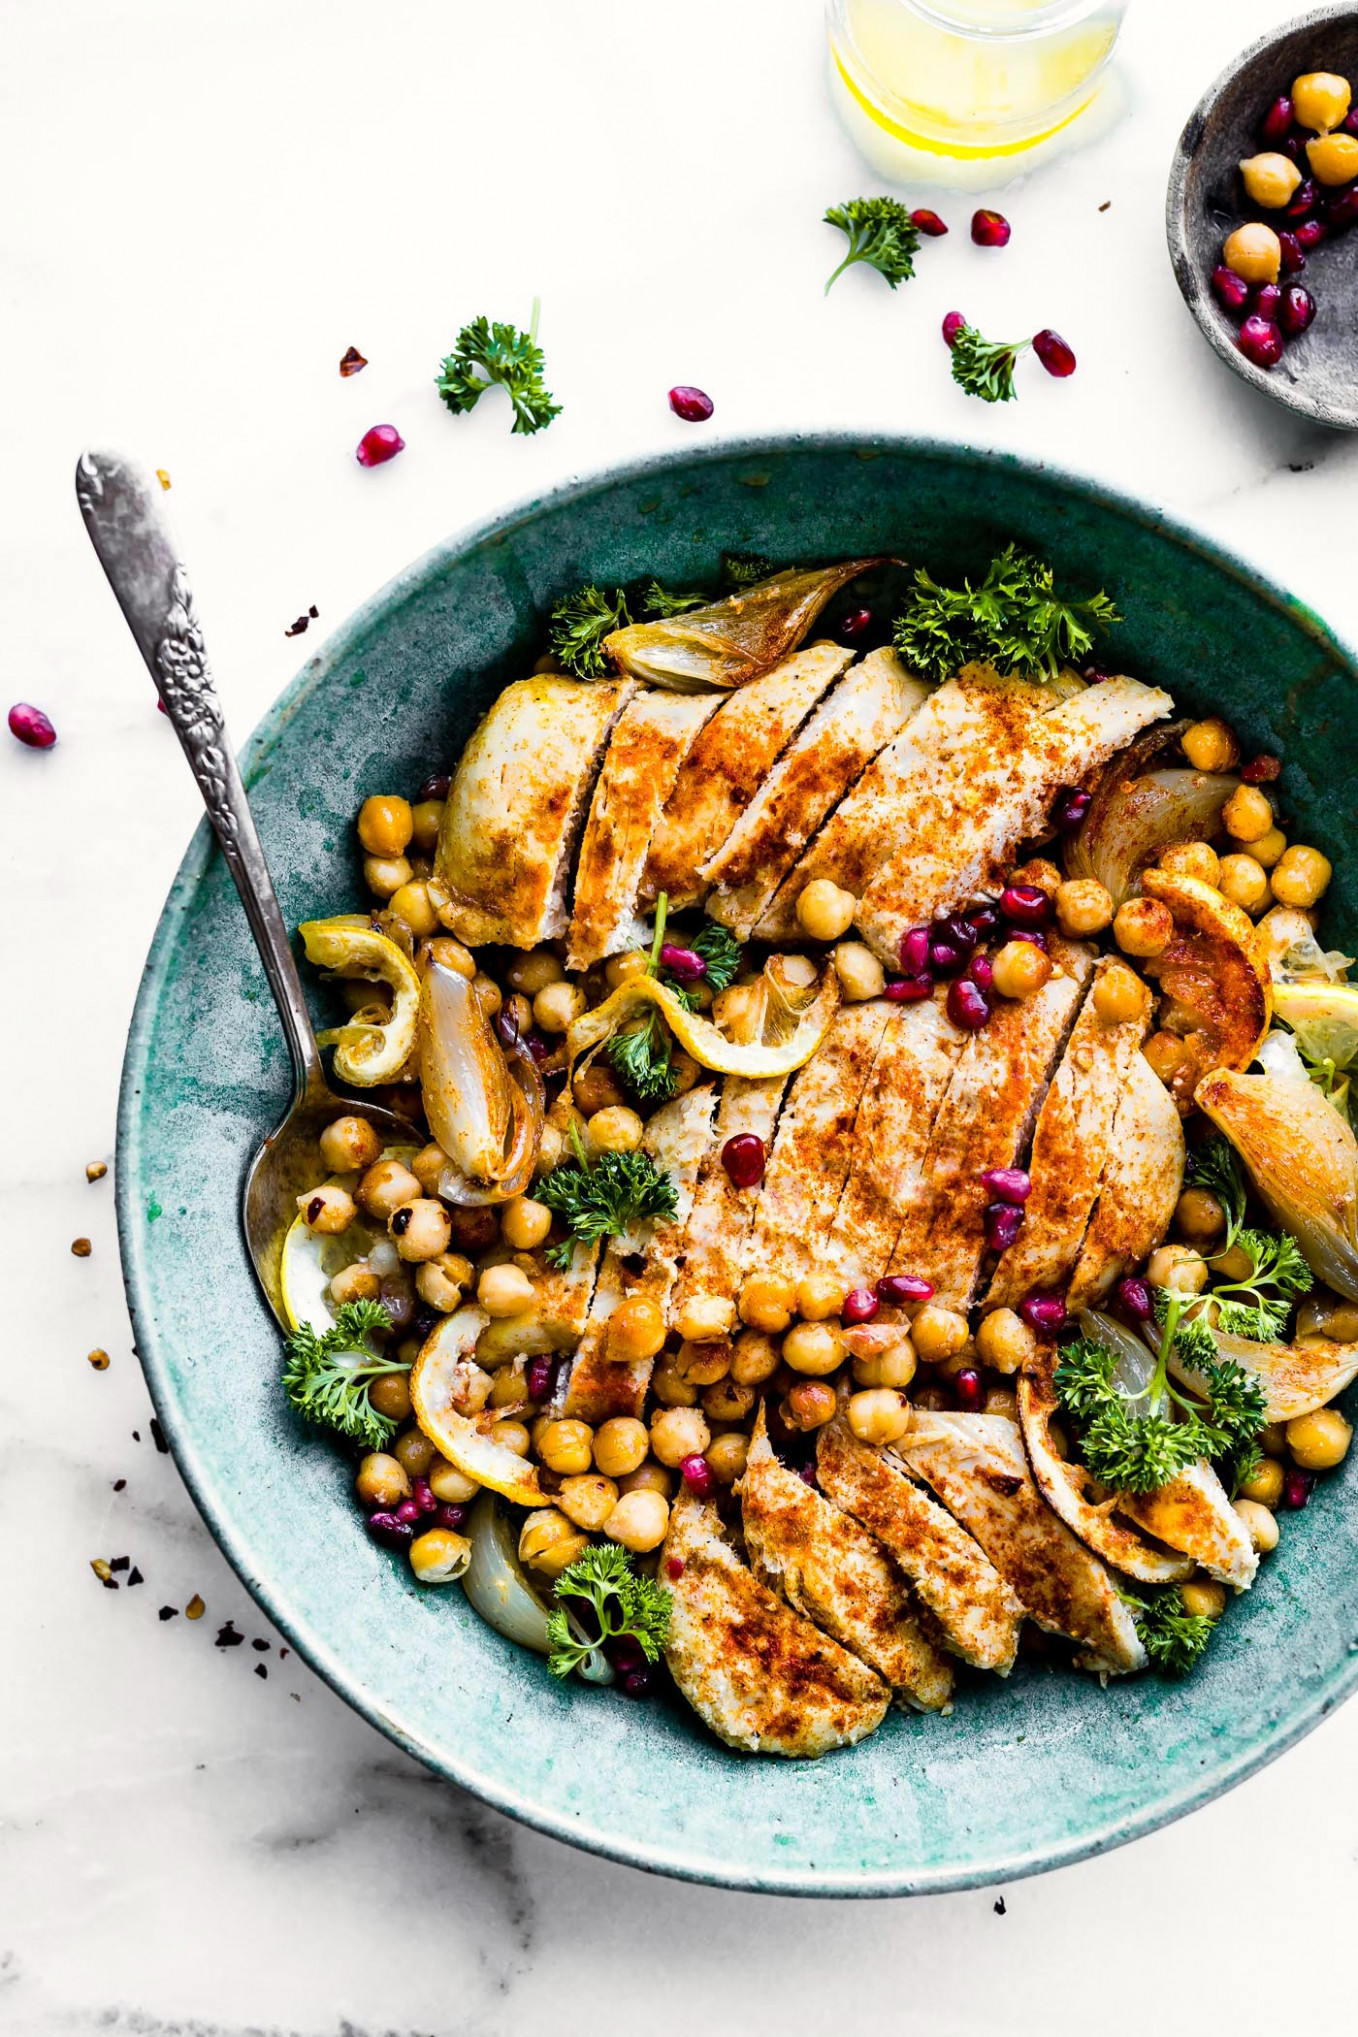 Cumin Roasted Chickpea Chicken Bowls Recipe | Cotter Crunch - recipes bowl food